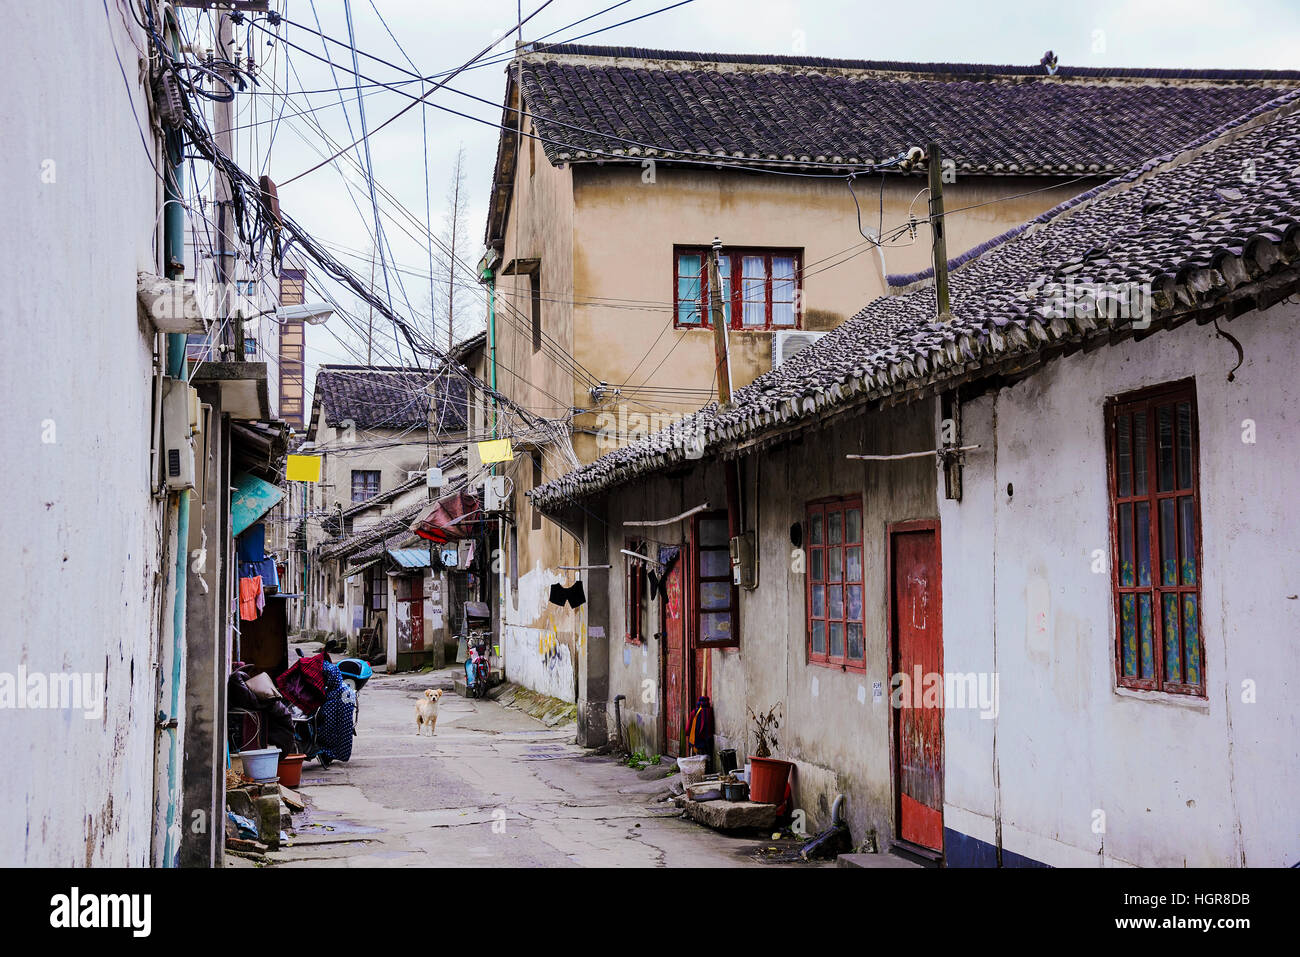 Old street in an ancient town in Shanghai China - Stock Image